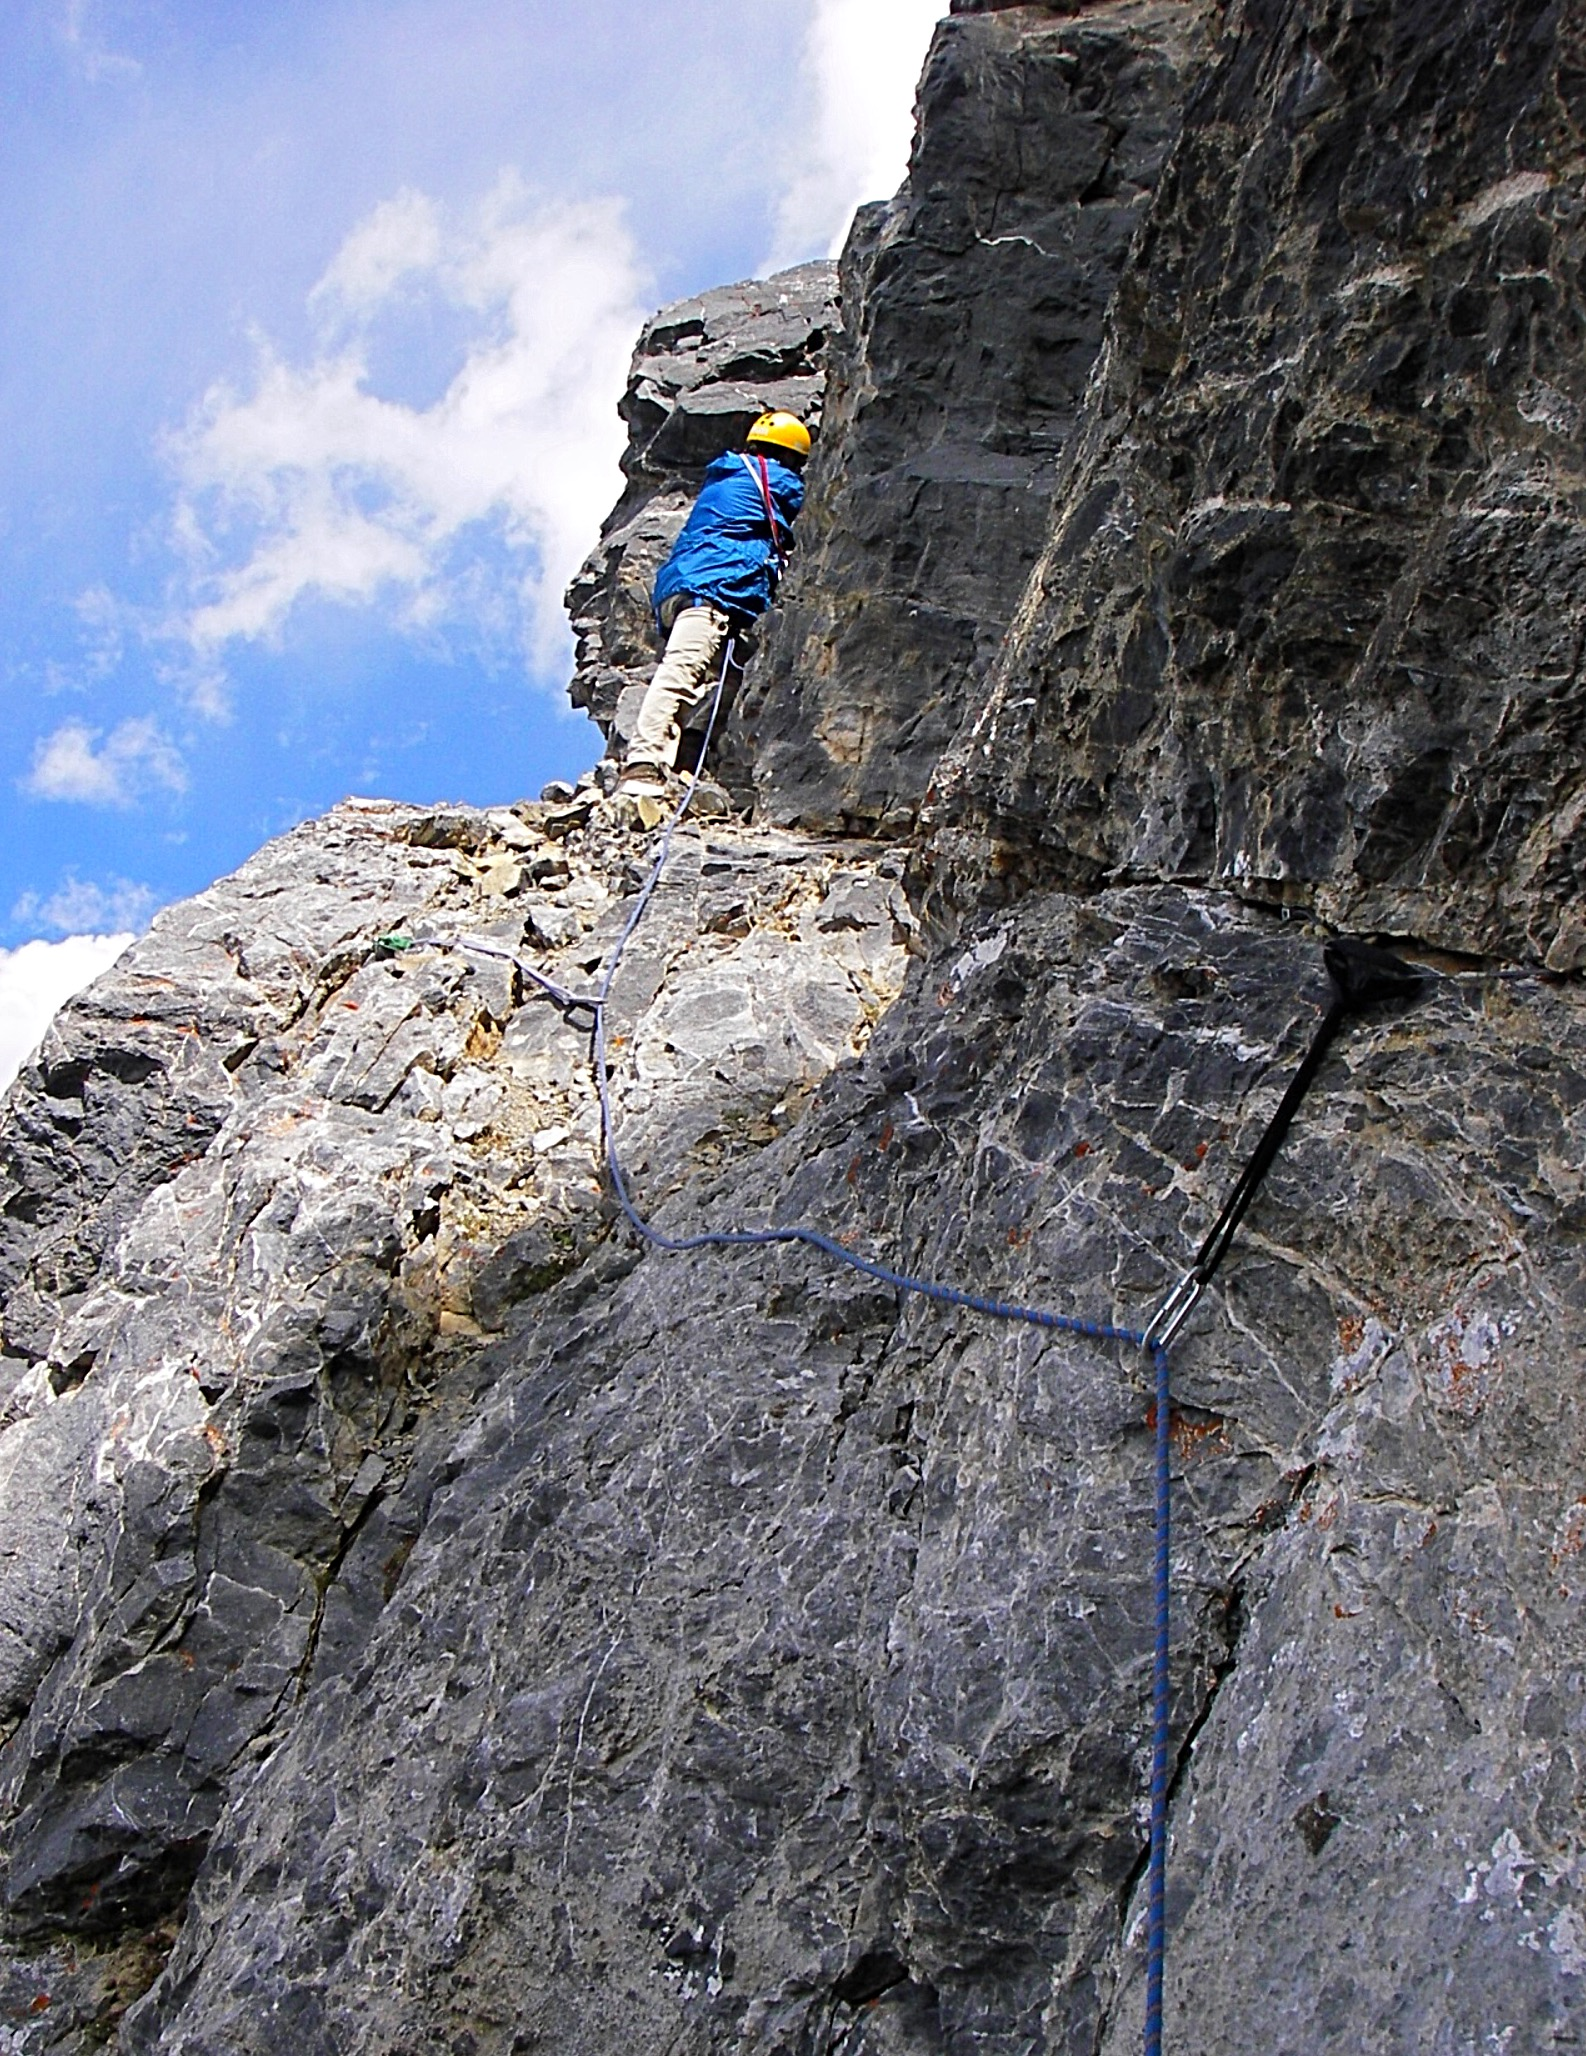 Move left on the ledge a short way until you reach the bottom of a narrow gully. Climb up this to the summit. The angle eases off and the rock quality deteriorates. The pitch was about ½ a rope length (60-m rope). Judi Steciak Photo